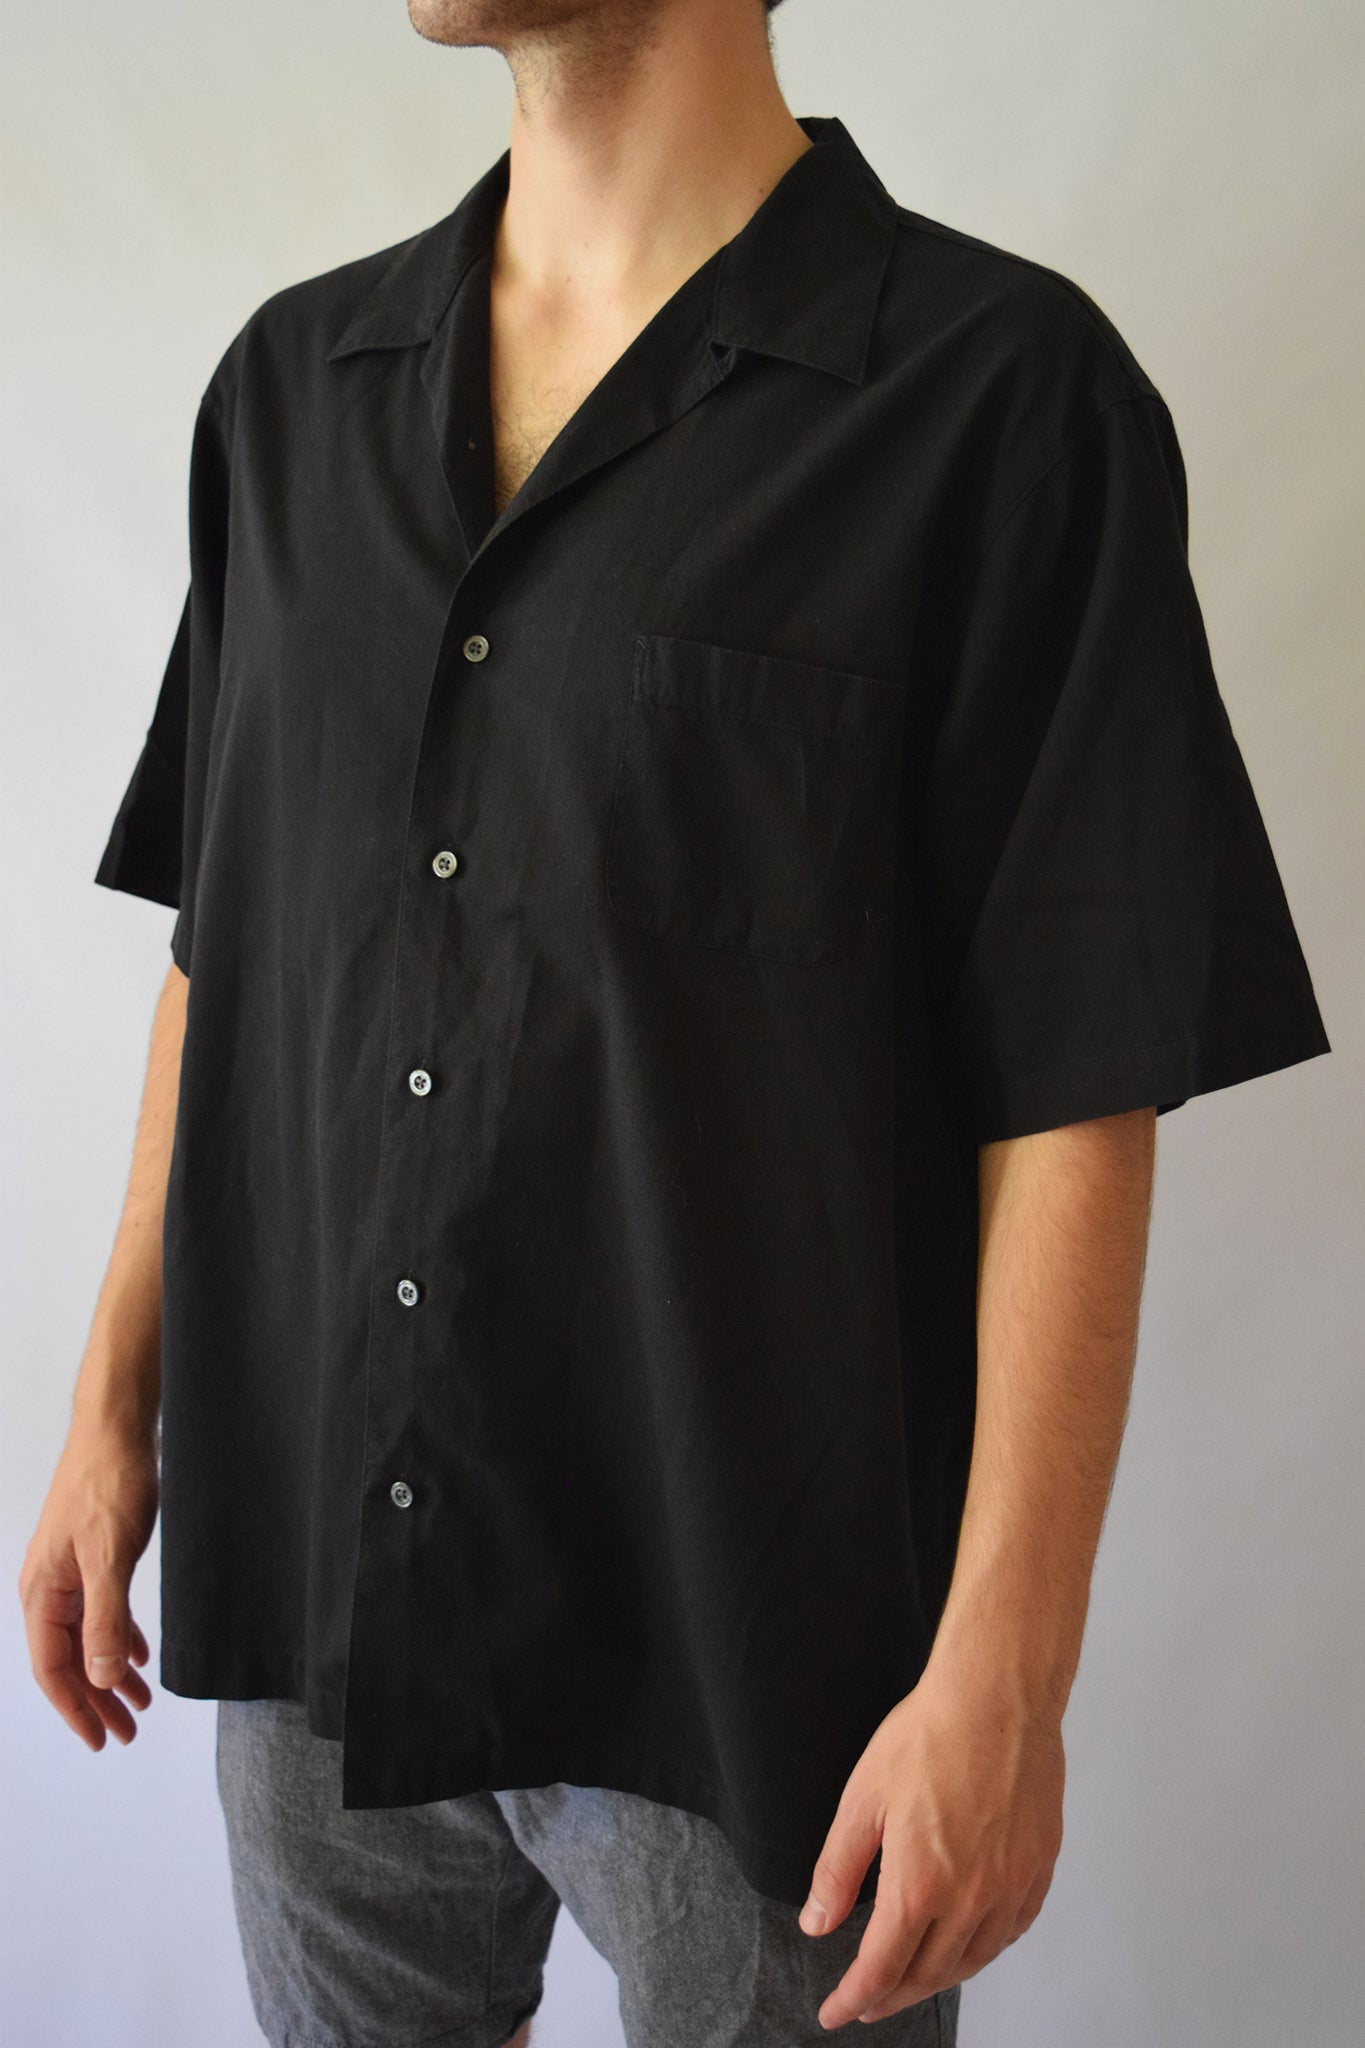 Men's Black Button Up